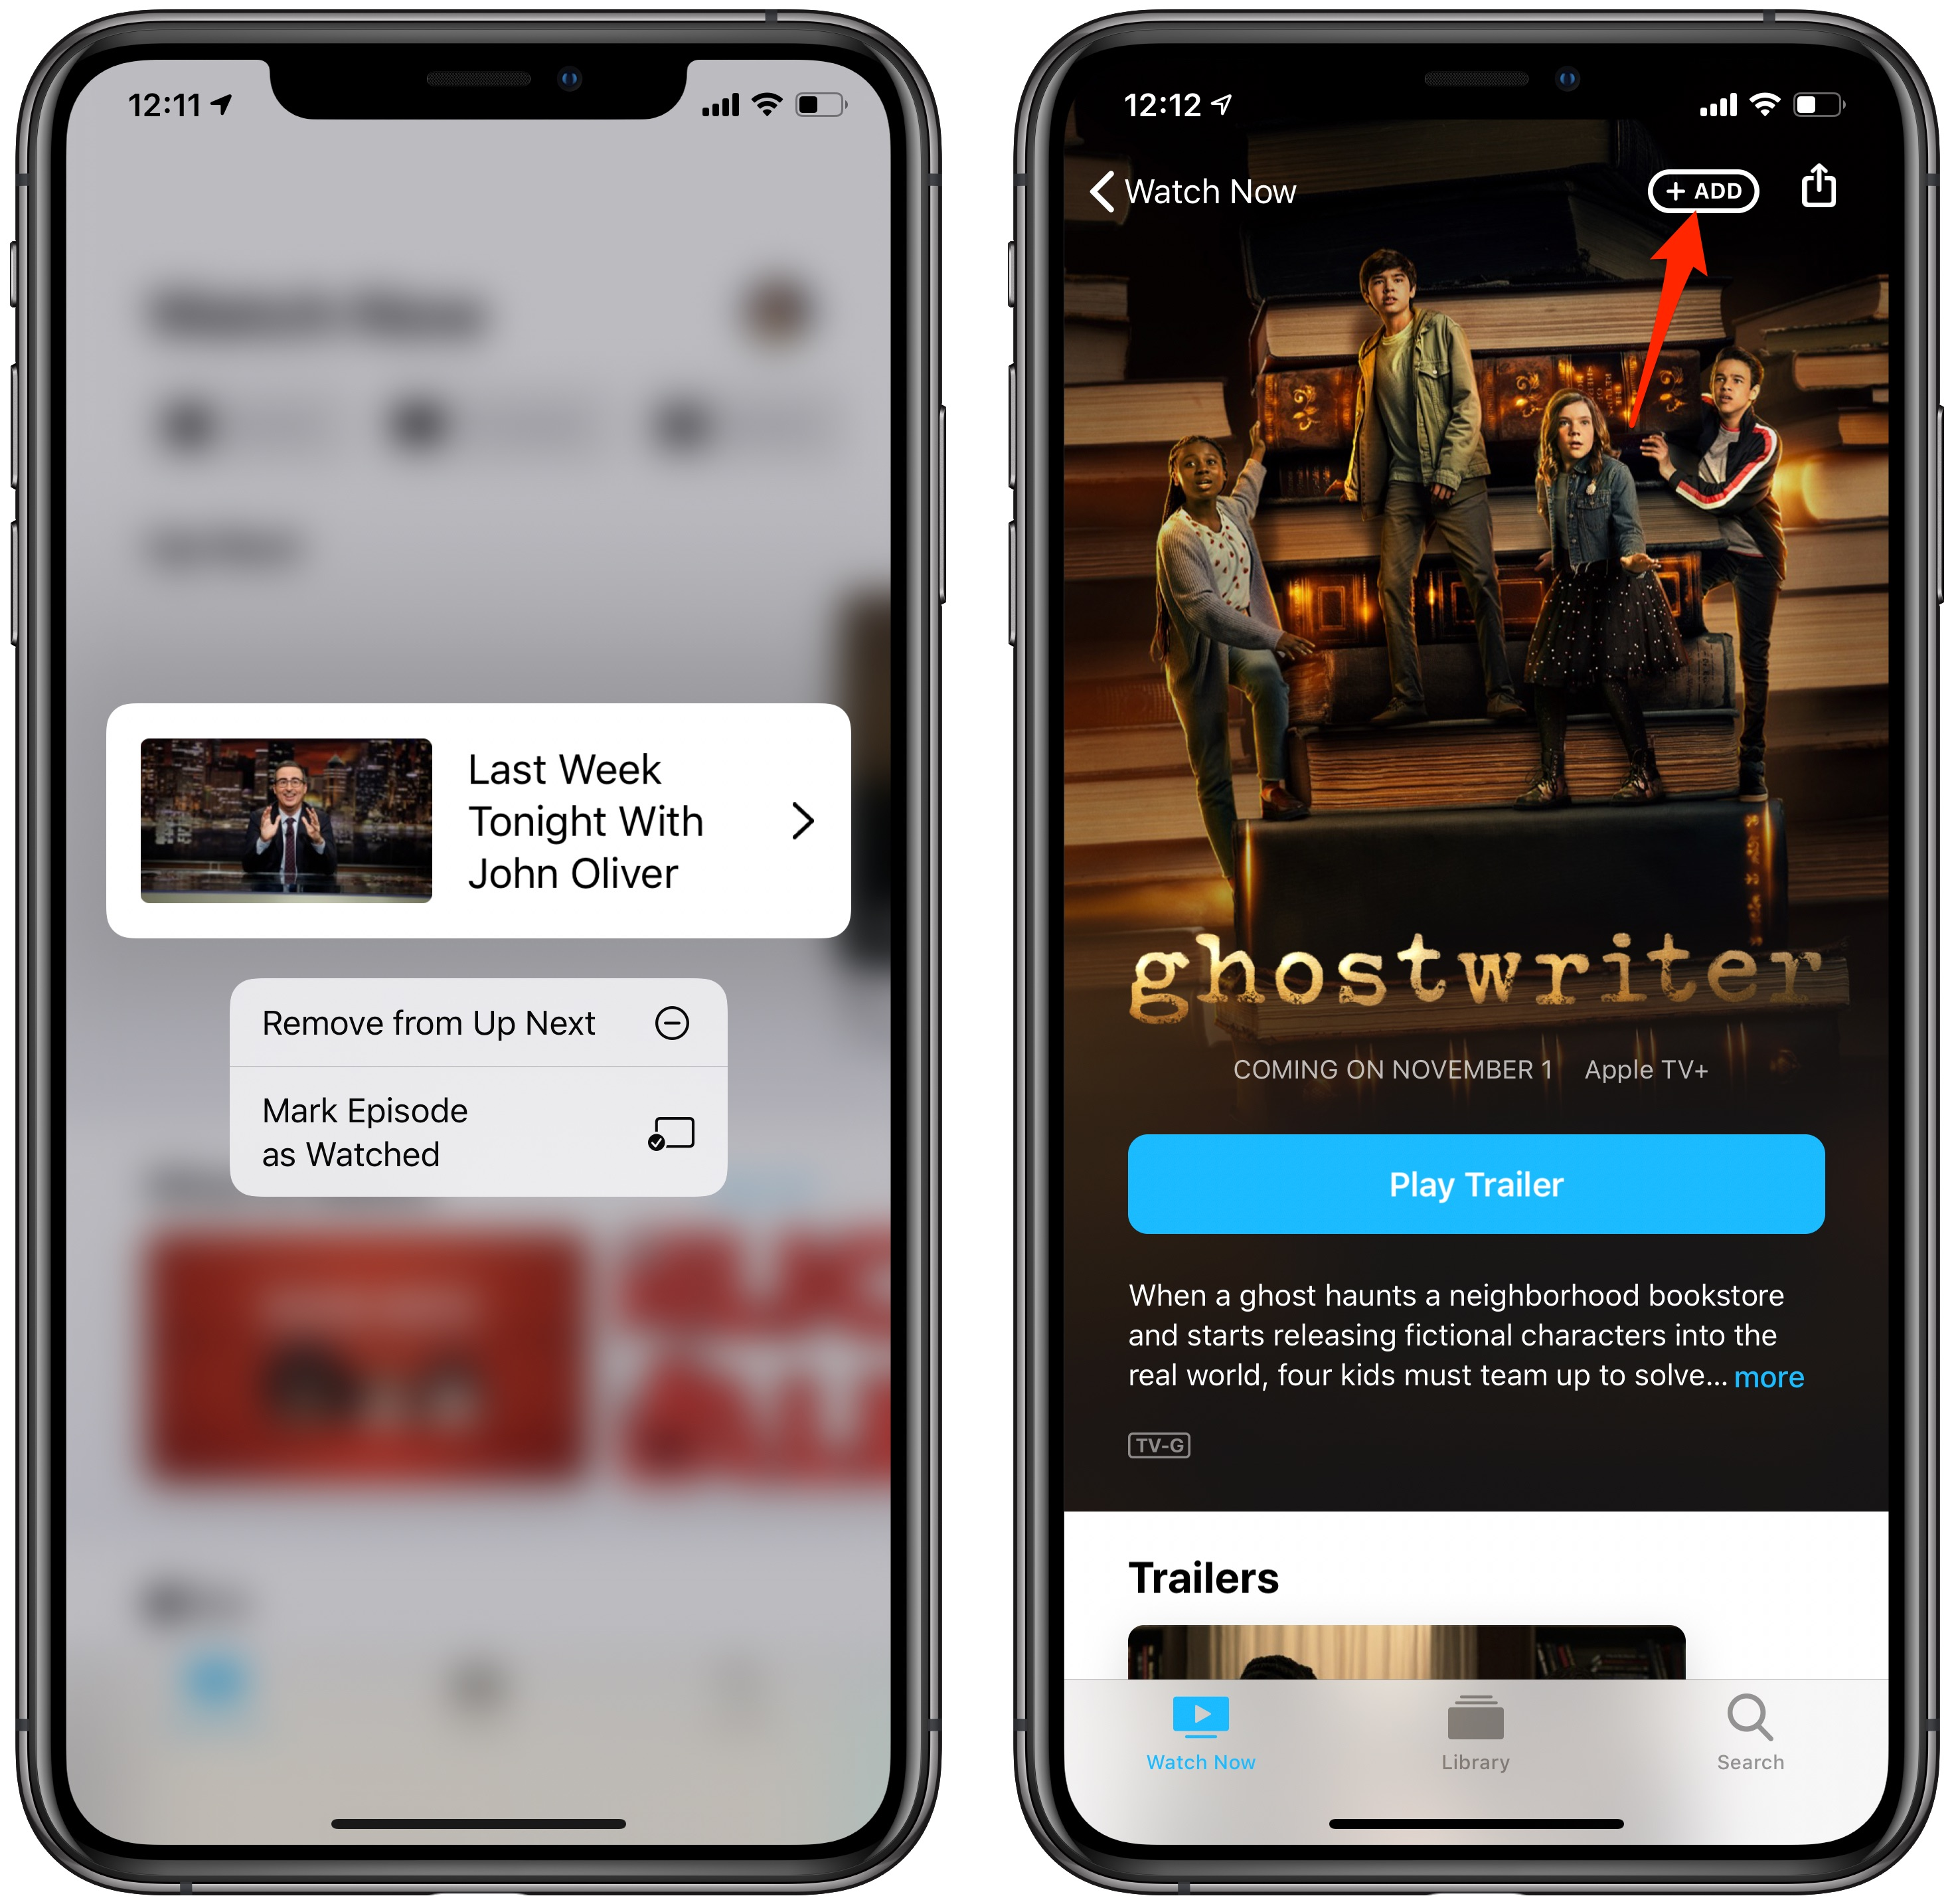 iOS 13.2 features tutorial: contextual menu and a new Add button in the TV app